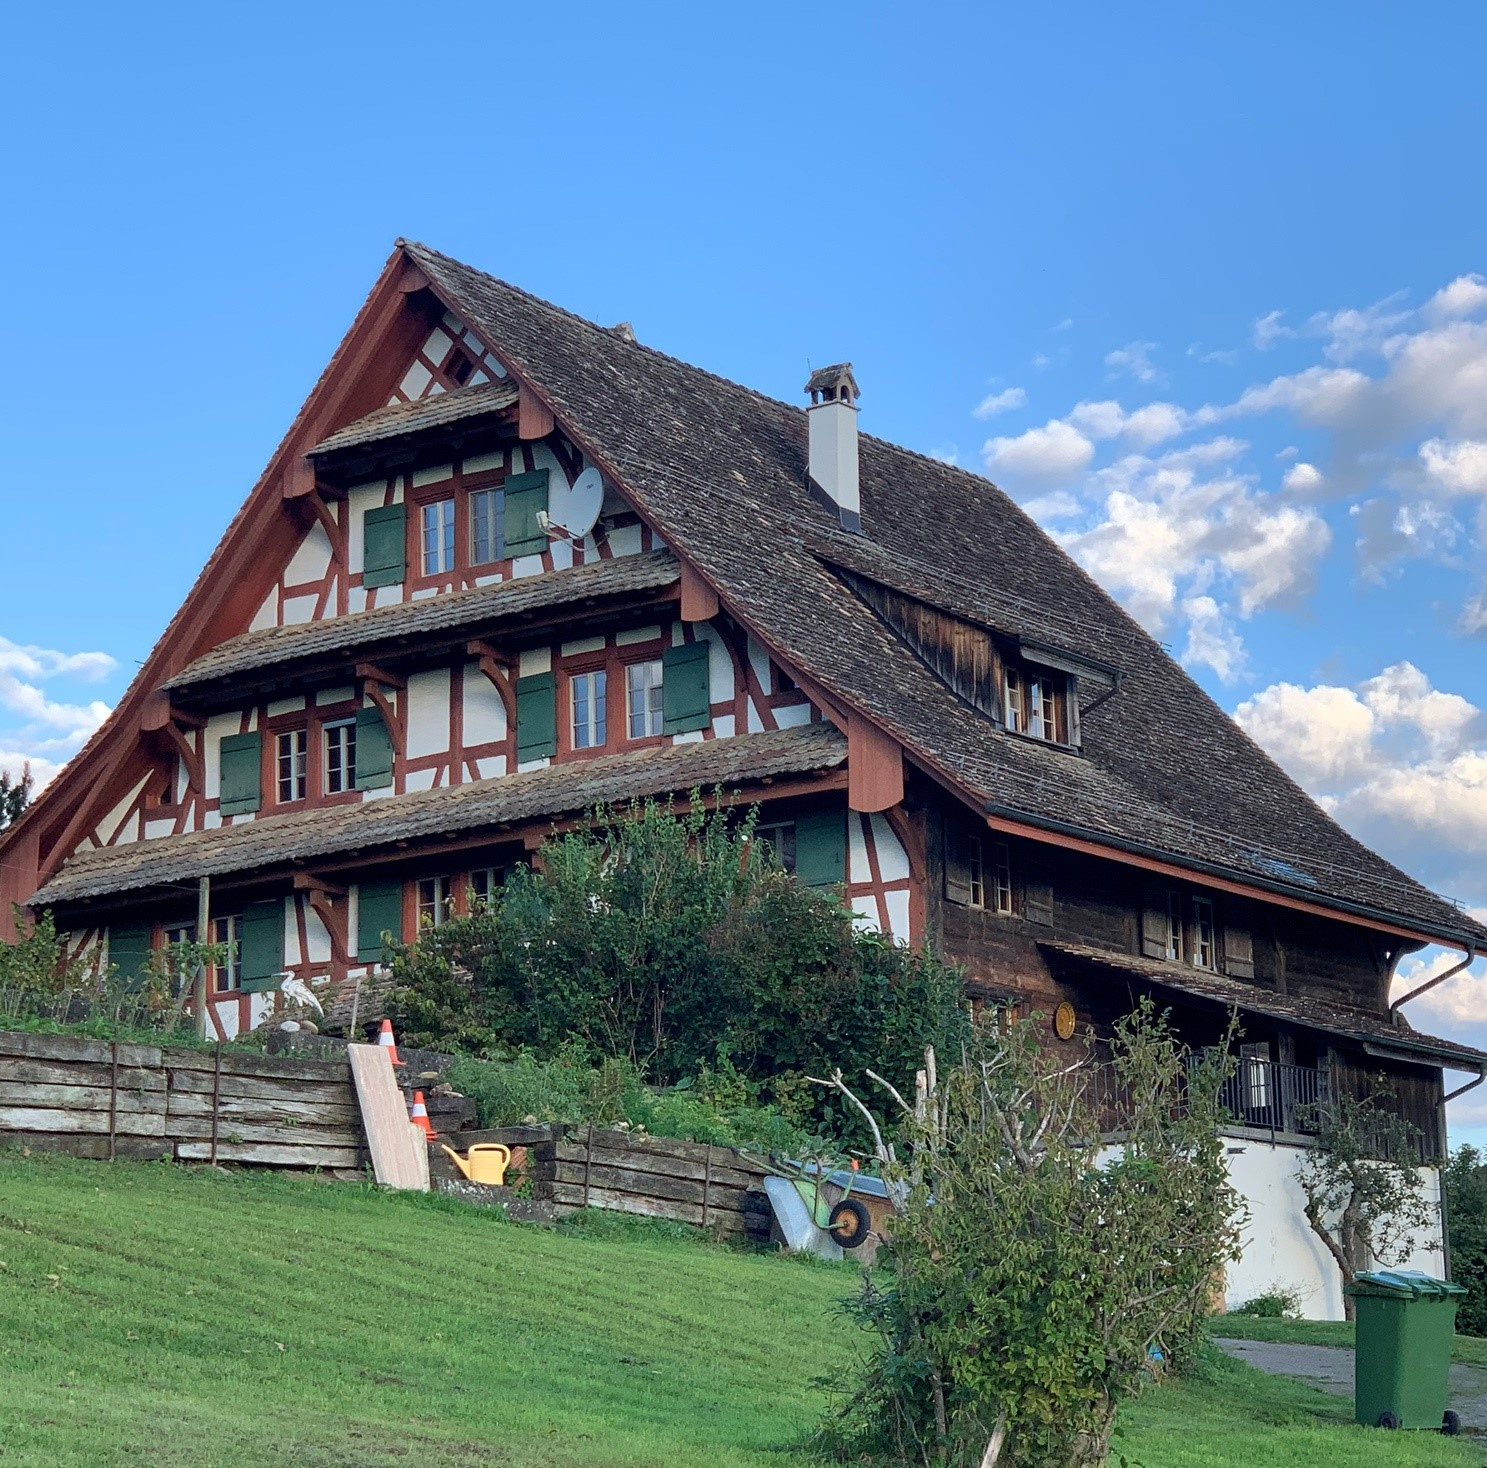 PNX House in Hirzel